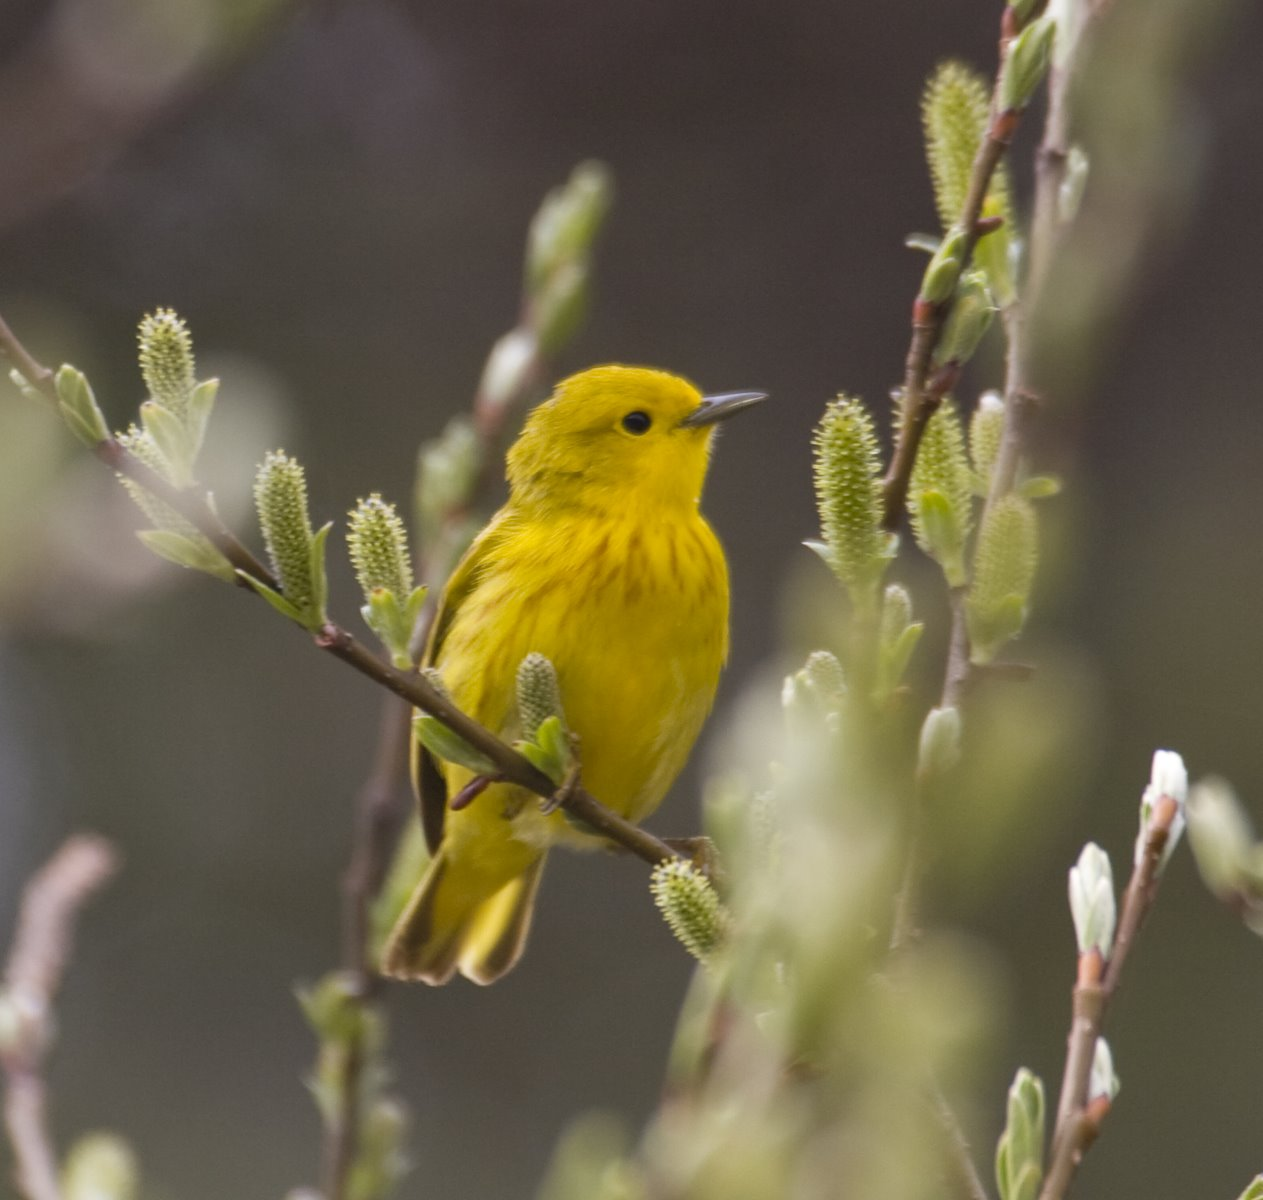 his Yellow Warbler is a male, distinguishable by the darkish streaks that run down his chest.